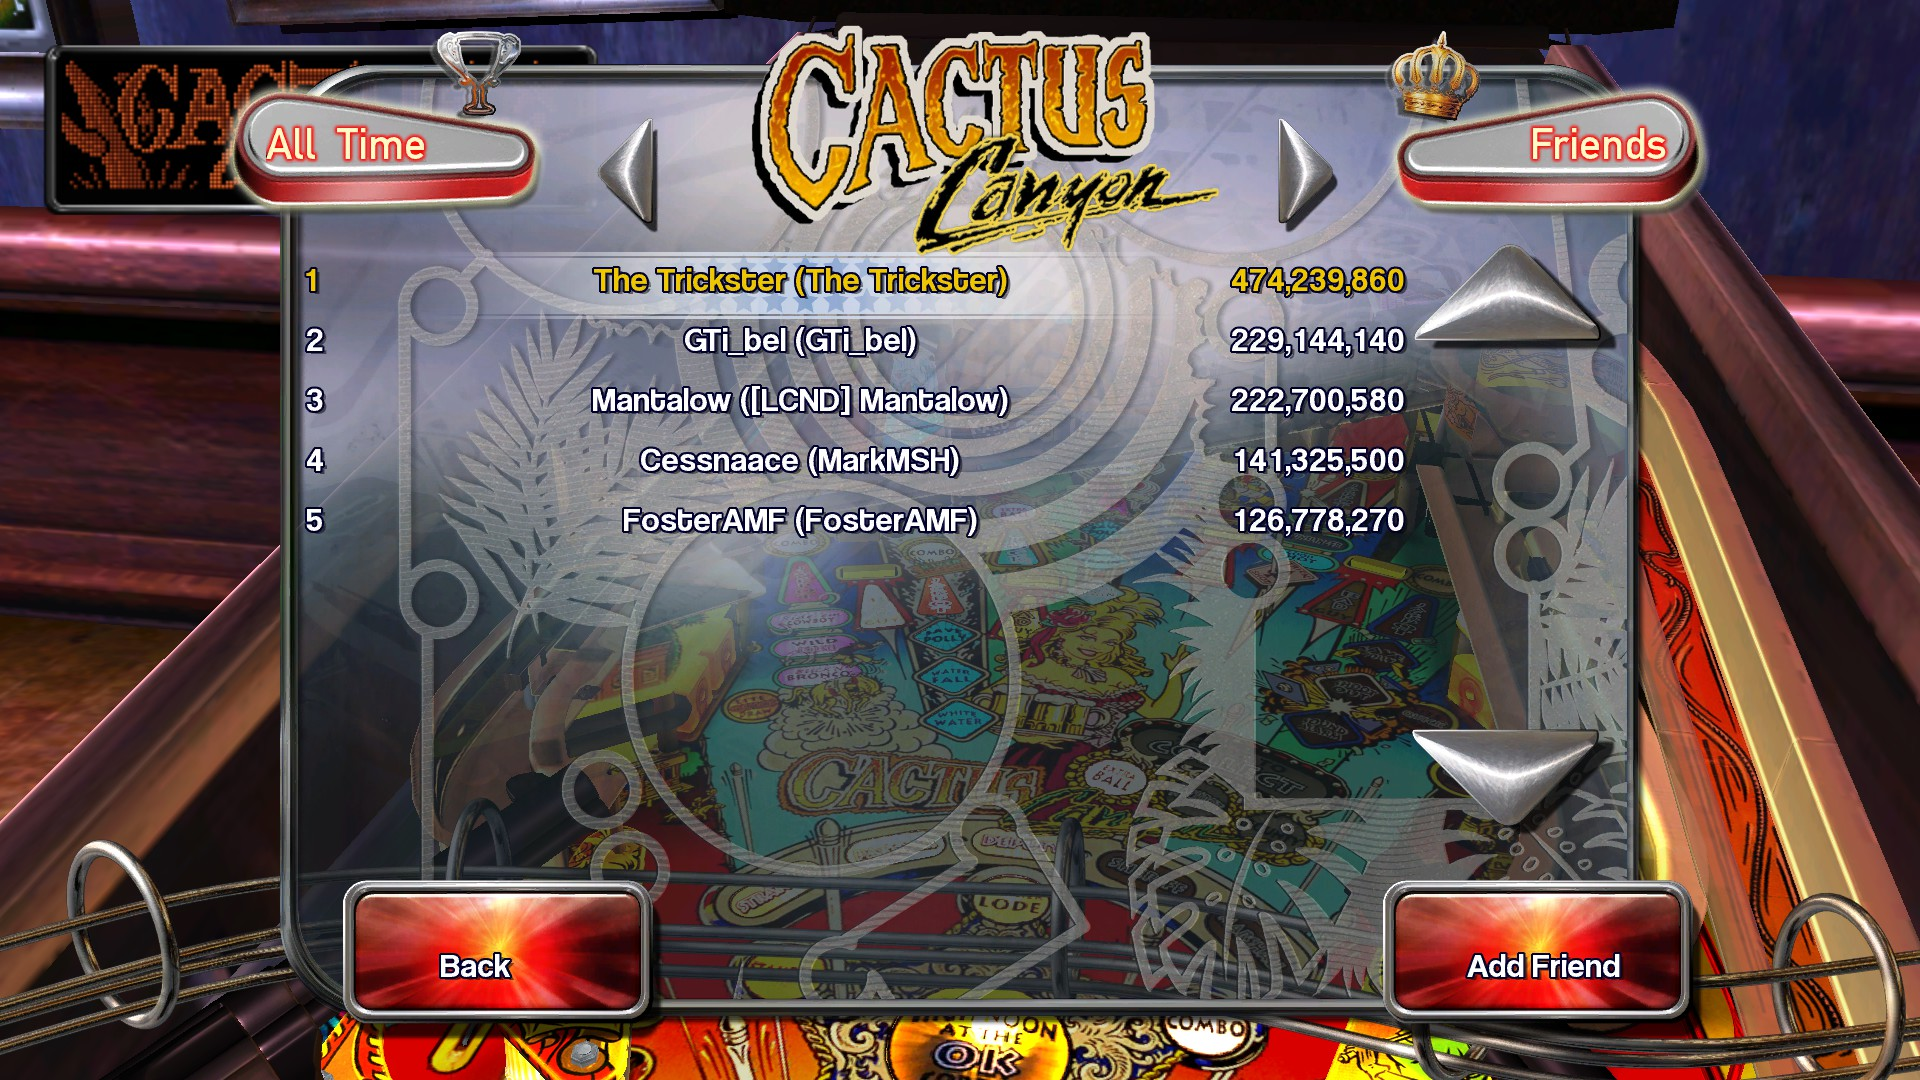 TheTrickster: Pinball Arcade: Cactus Canyon (PC) 474,239,860 points on 2016-04-12 09:26:31